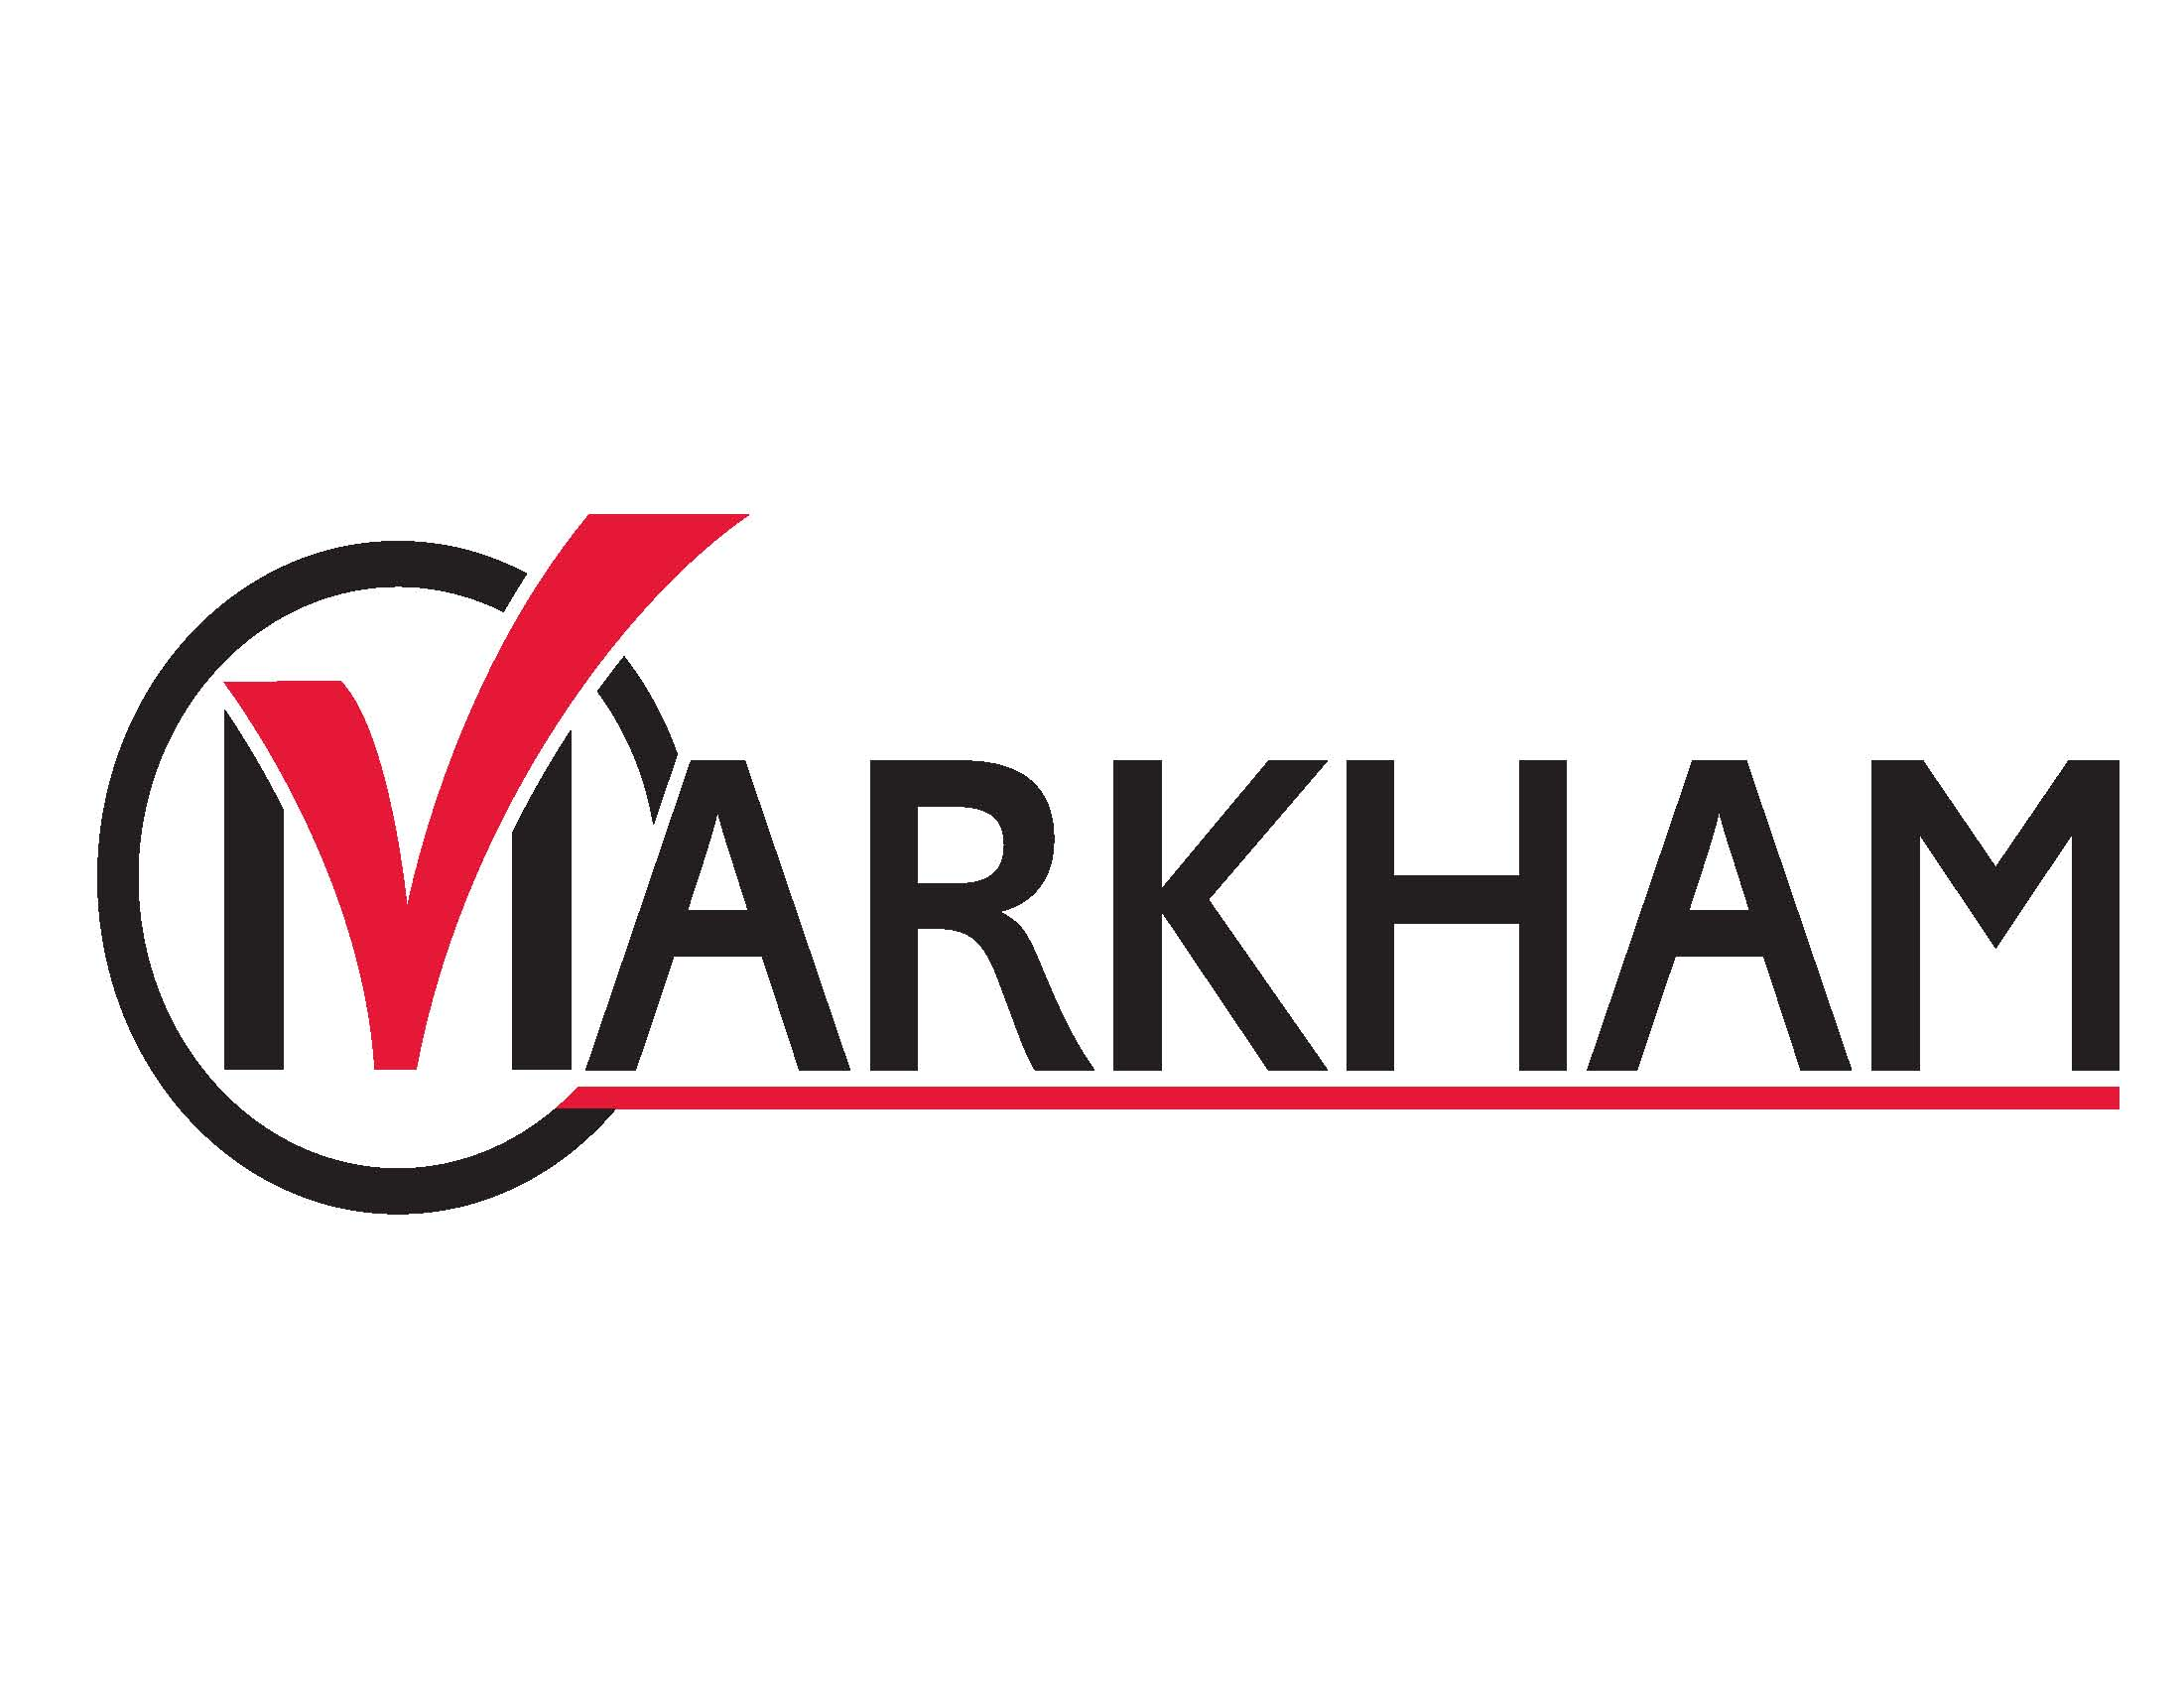 GIFT proudly recognizes Markham,ON as the 1st Designated Shinrin Yoku/ Forest Therapy Trail in Canada! -